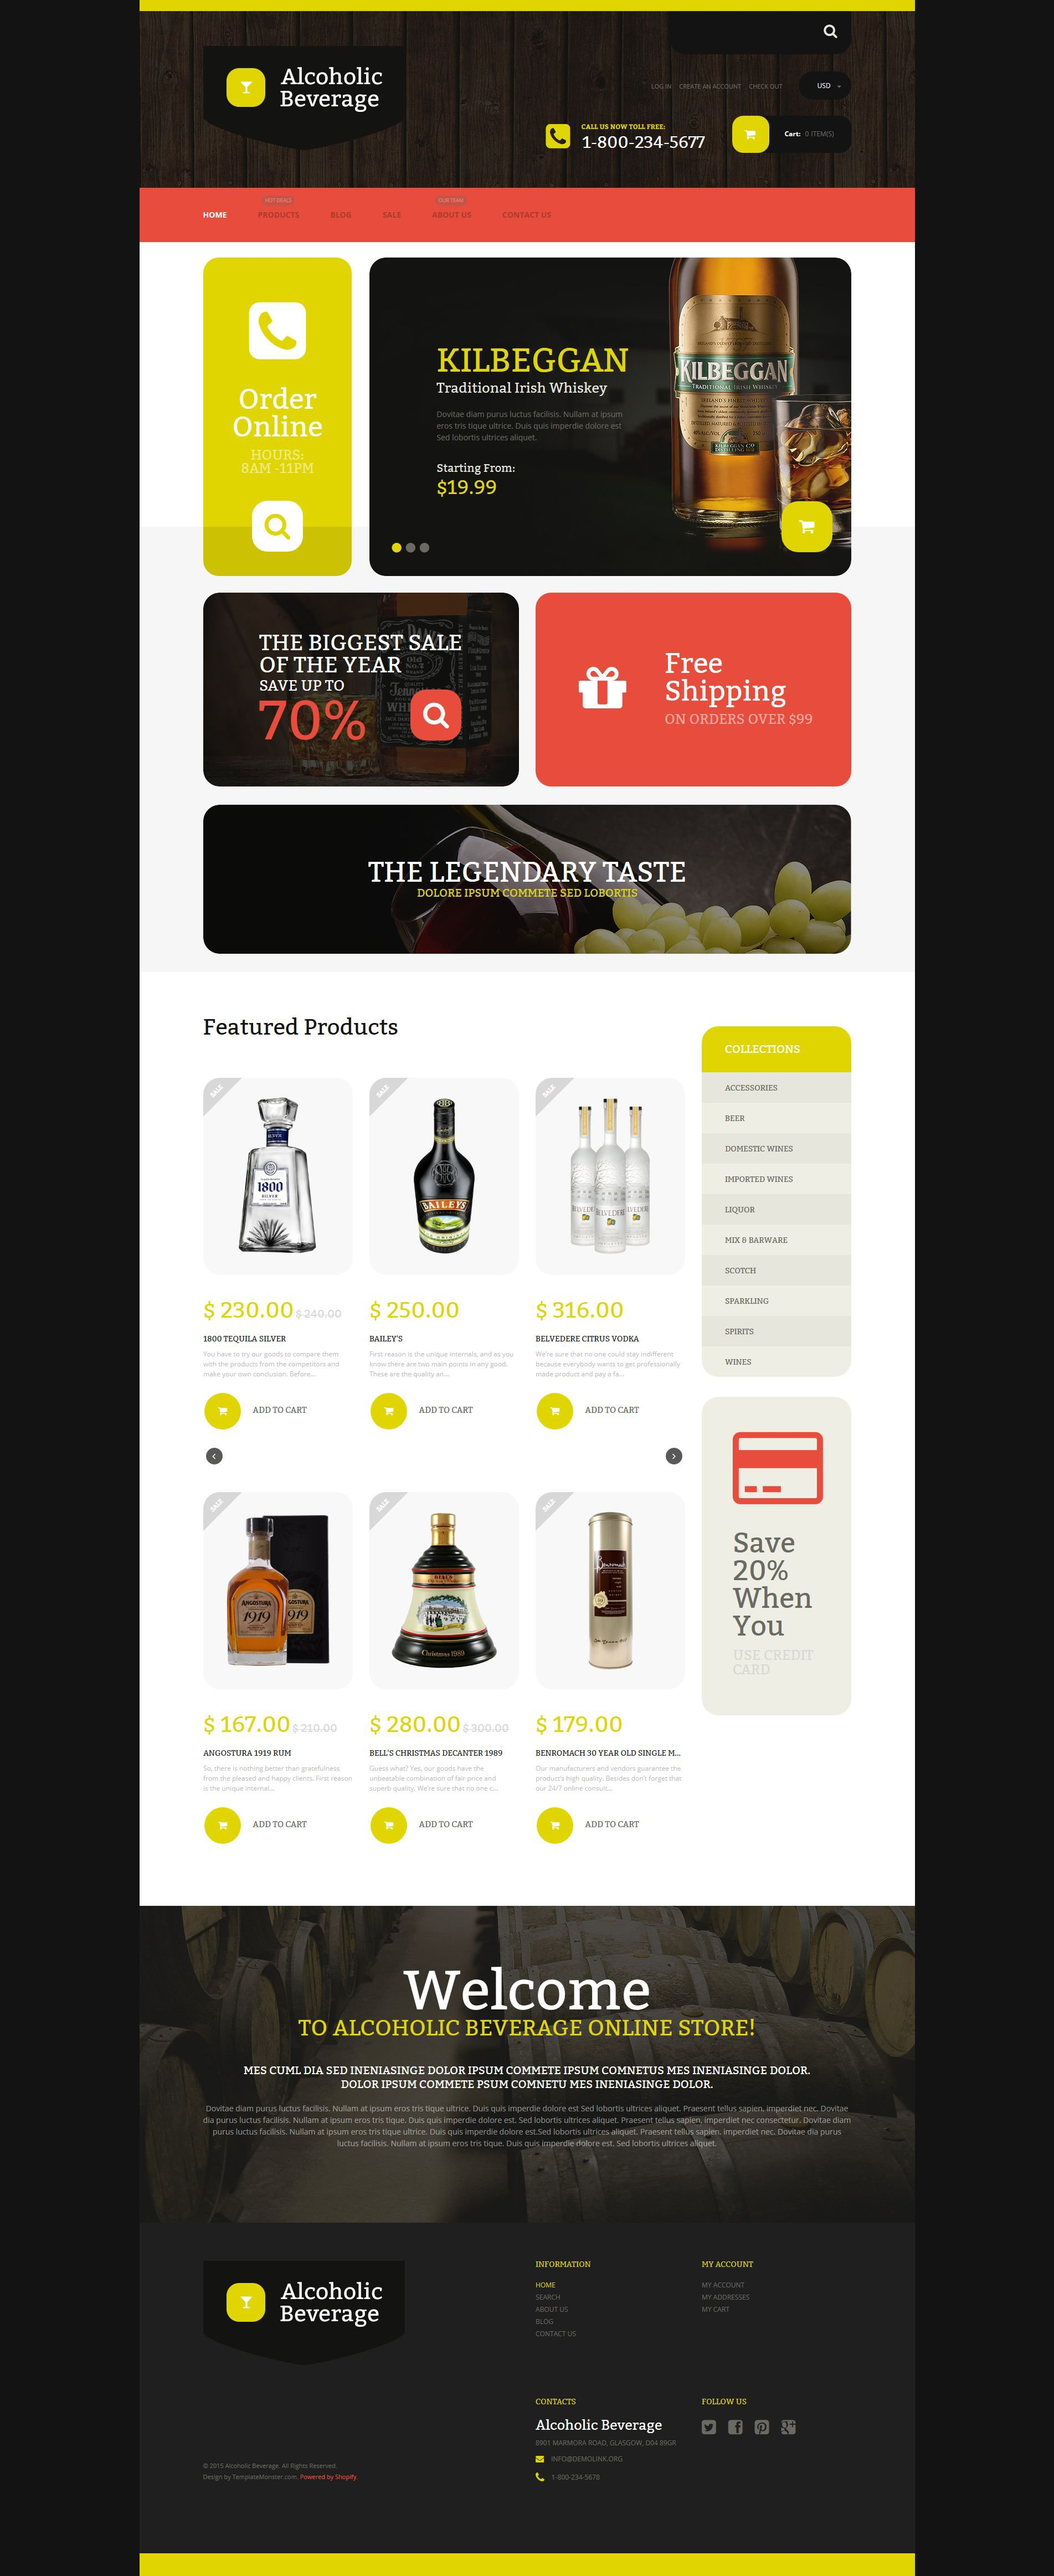 The Alcohololic Alcoholic Shopify Design 54690, one of the best Shopify themes of its kind (food & drink), also known as alcohololic alcoholic Shopify template, beverage store Shopify template, scoth Shopify template, whisky Shopify template, rum Shopify template, cognac Shopify template, armagnac Shopify template, gin Shopify template, jenever Shopify template, absinthe Shopify template, vodka Shopify template, tequila Shopify template, glenfiddich Shopify template, absolut Shopify template, vanilia Shopify template, ancnoc Shopify template, balvenie Shopify template, shopping cart and related with alcohololic alcoholic, beverage store, scoth, whisky, rum, cognac, armagnac, gin, jenever, absinthe, vodka, tequila, glenfiddich, absolut, vanilia, ancnoc, balvenie, shopping cart, etc.